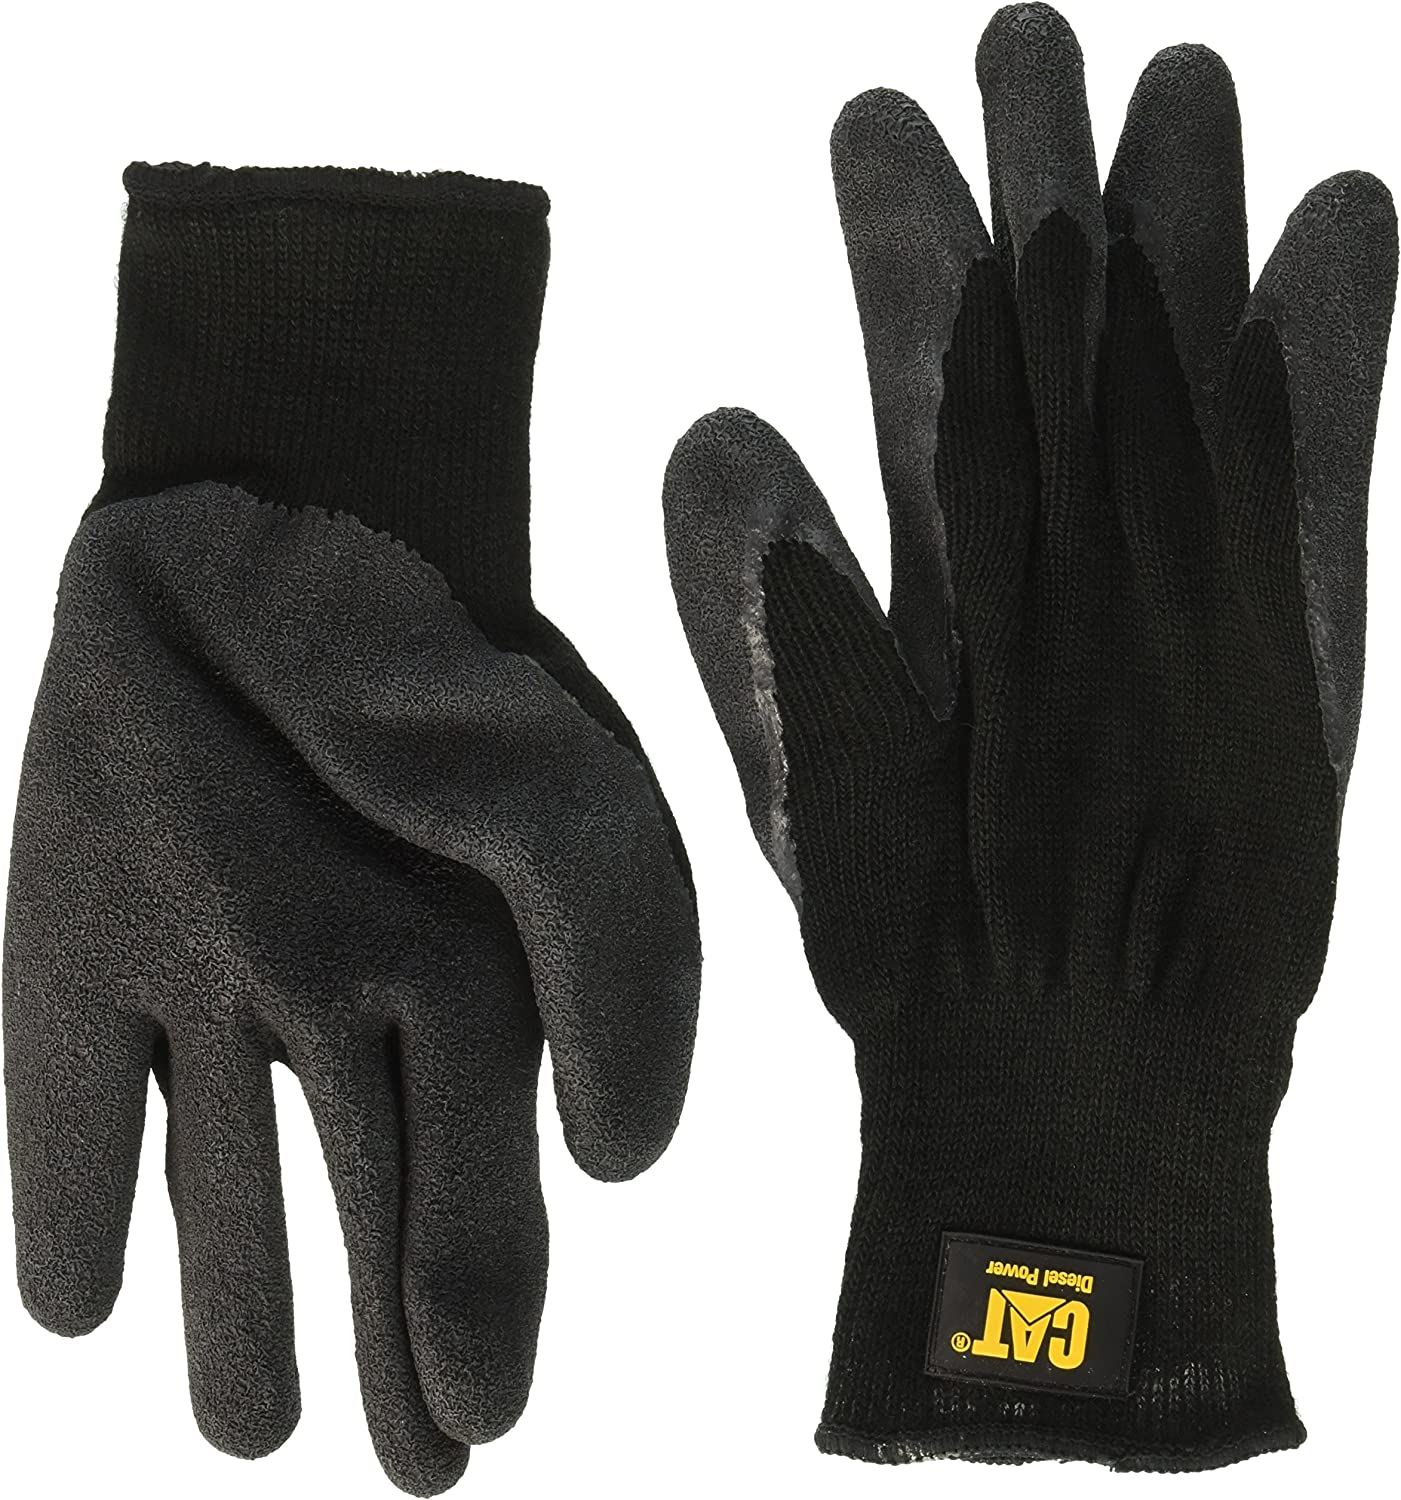 Cat Gripper Gloves Caterpillar Latex Palm Knitted Safety Workwear 3 Sizes